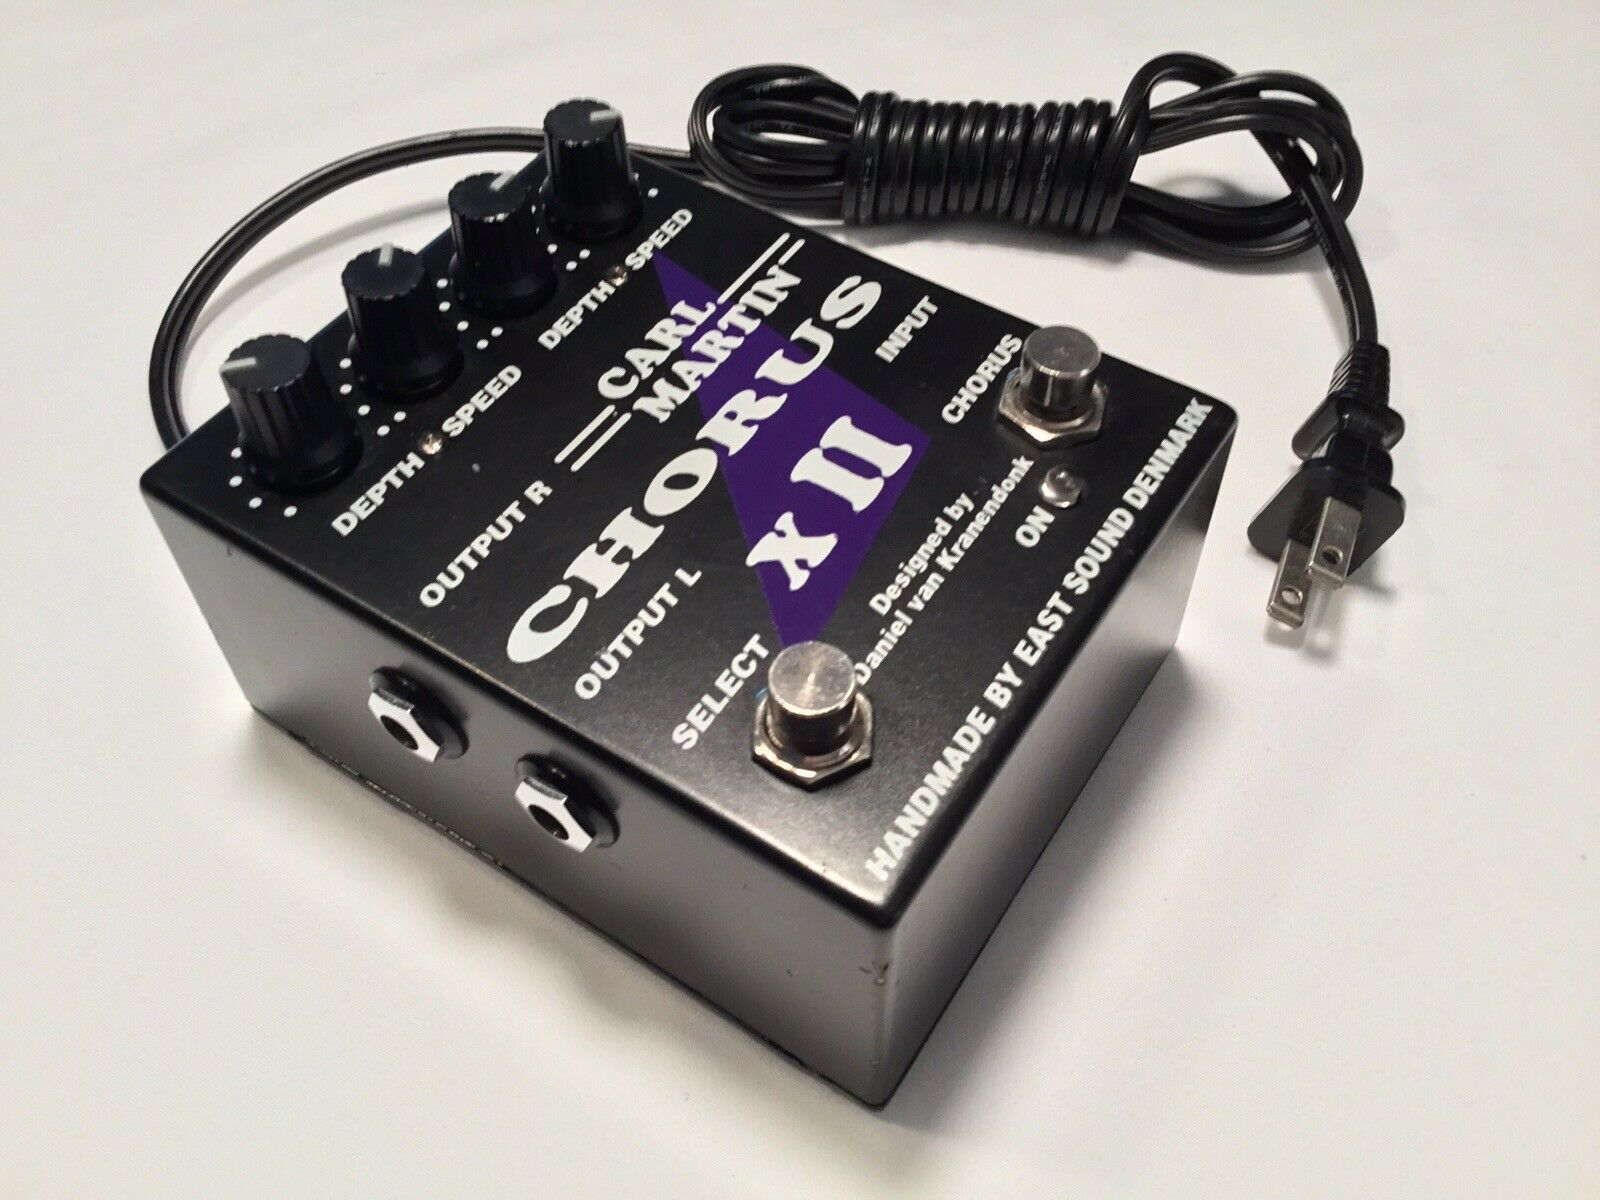 CARL MARTIN Dual STEREO Chorus XII Effects Pedal Handmade By East Sound CLEAN